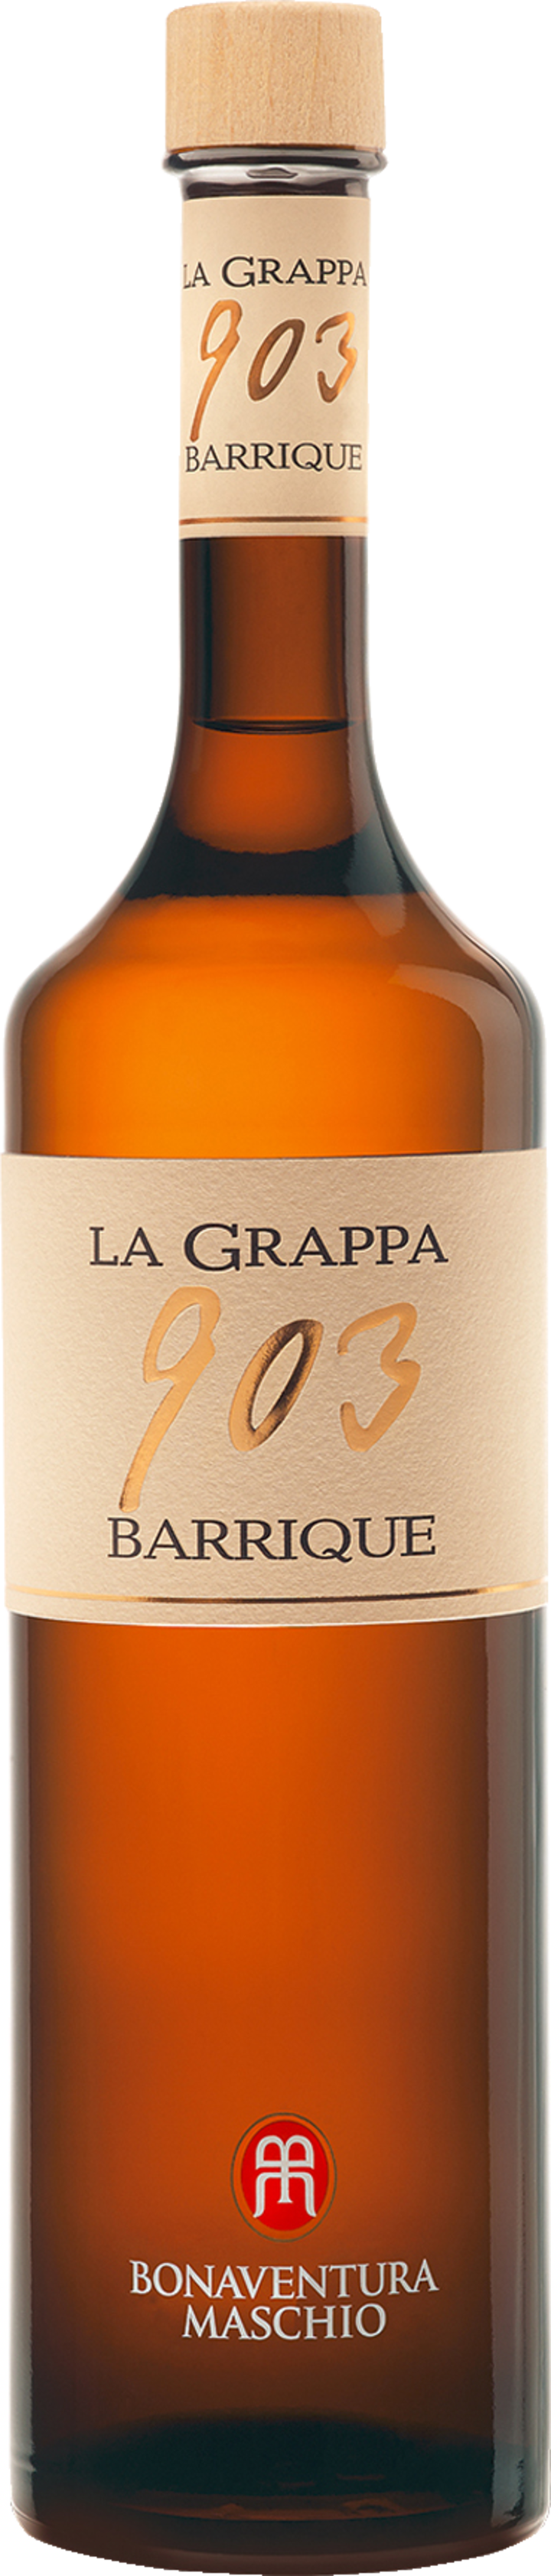 La Grappa 903 Barrique